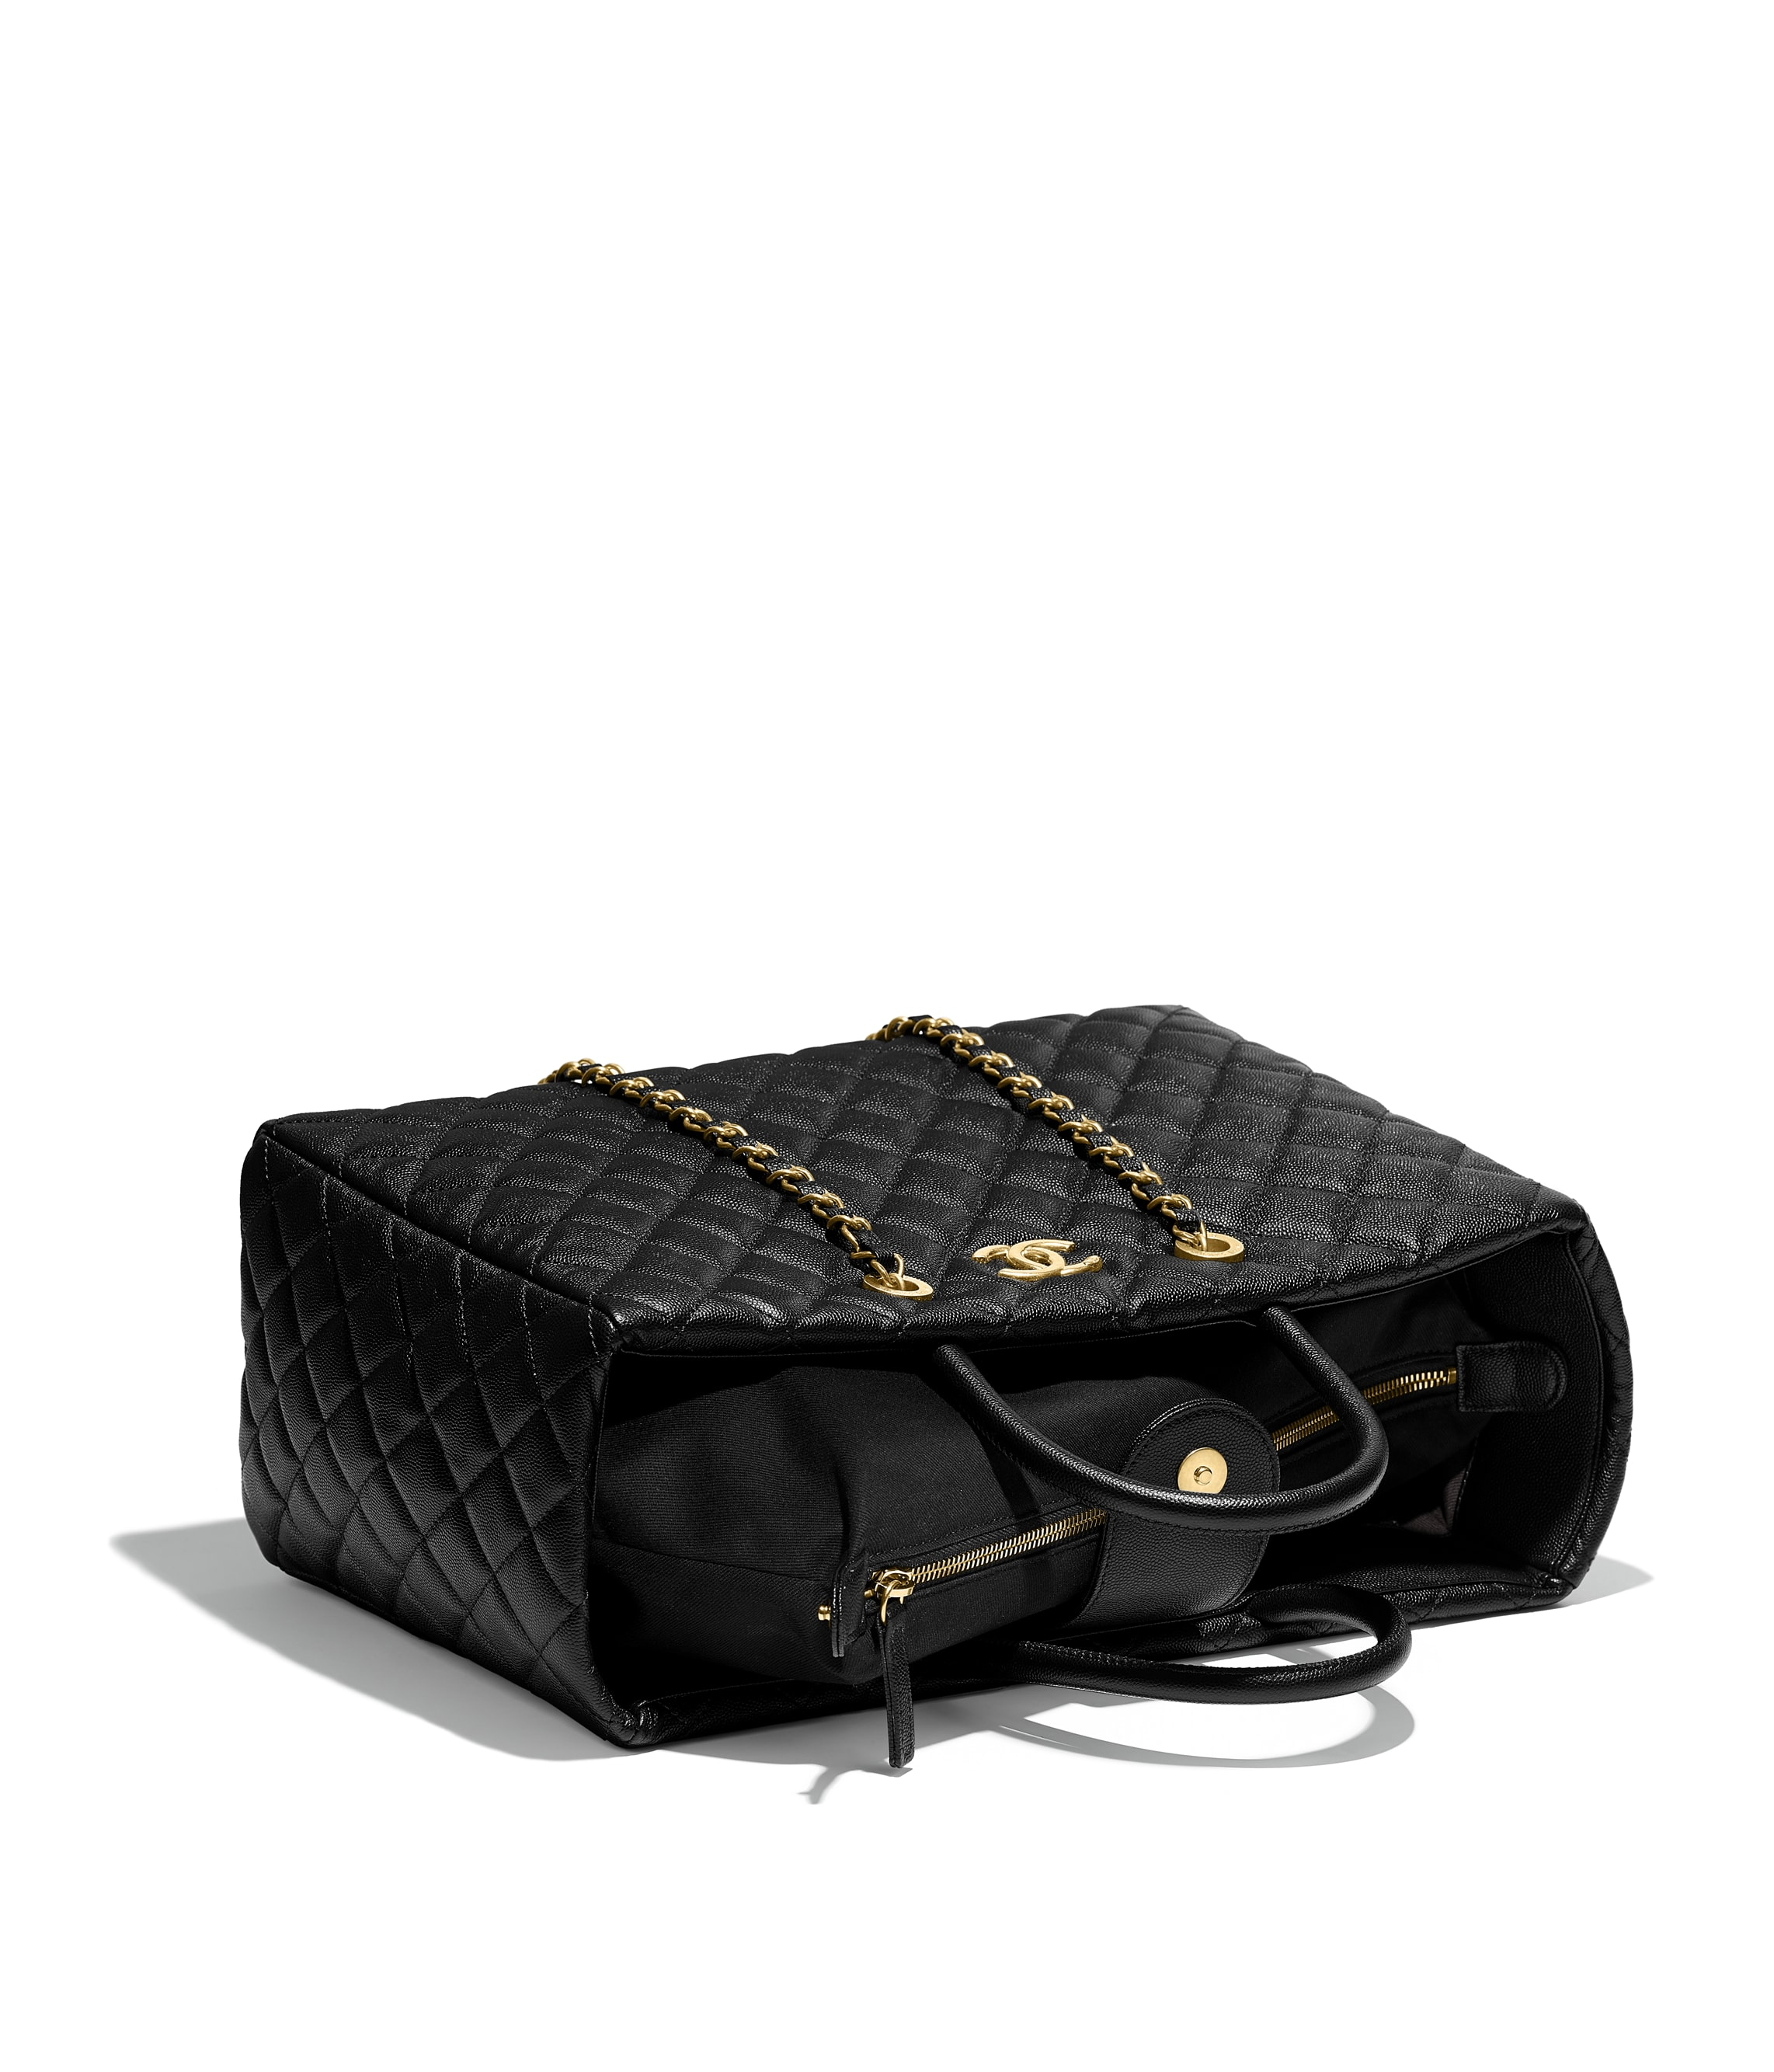 691570462c1 Chanel Black Shopping Bag Set of 2 Ribbon